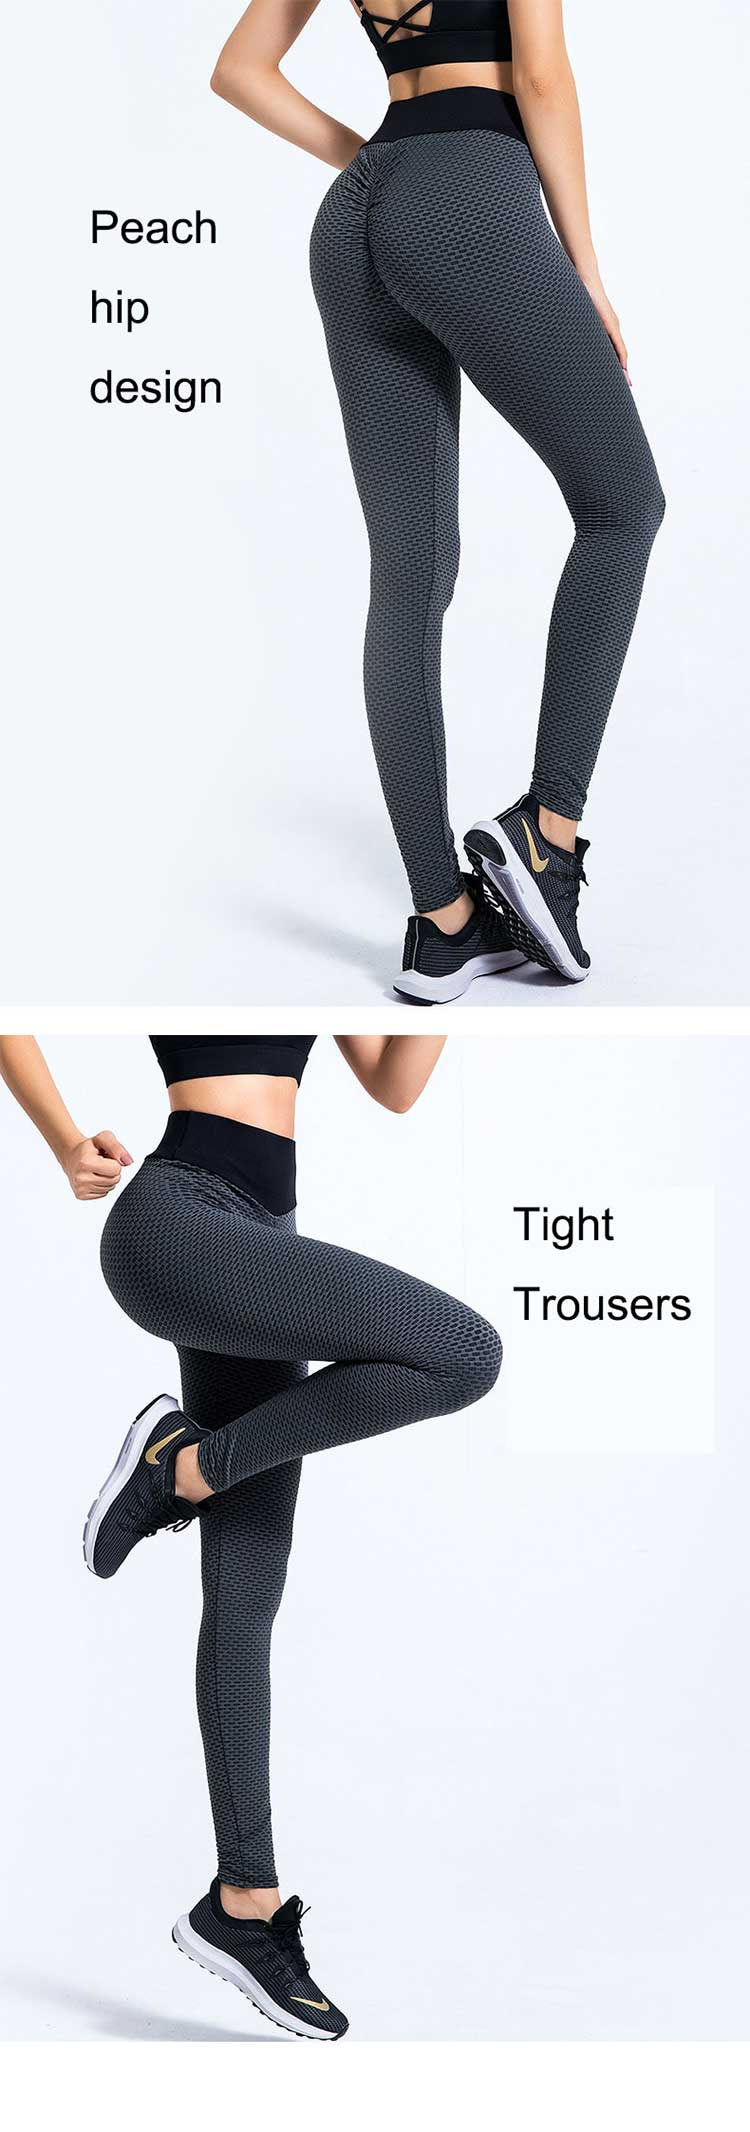 not-only-have-efficient-breathable-degree-,but-also-have-good-elasticity-to-assist-sports.